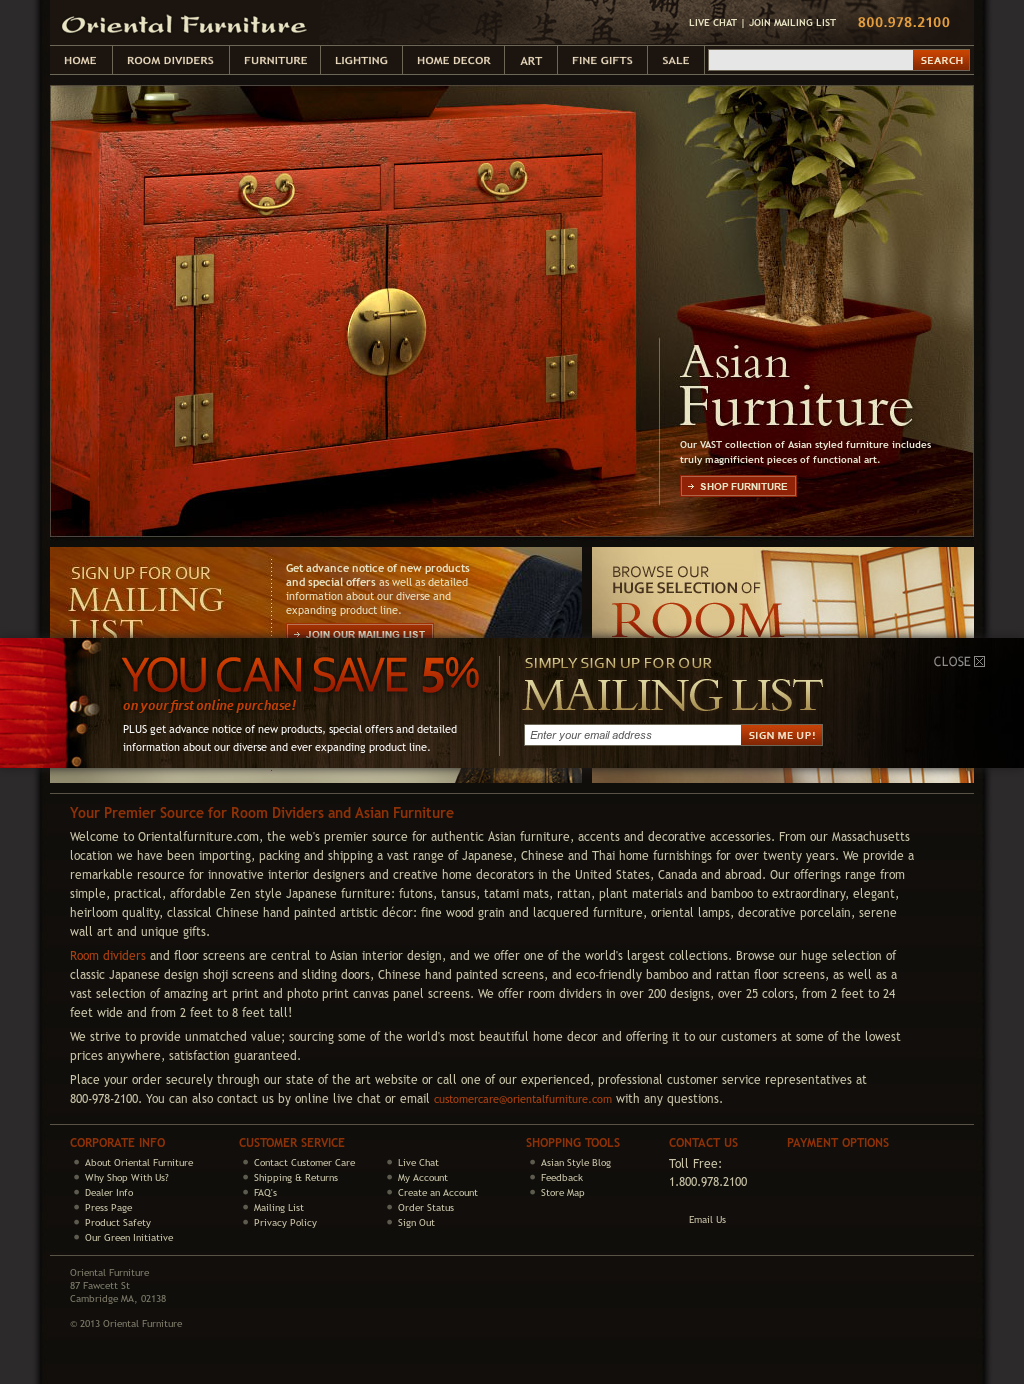 Orientalfurniture Compeors Revenue And Employees Owler Company Profile